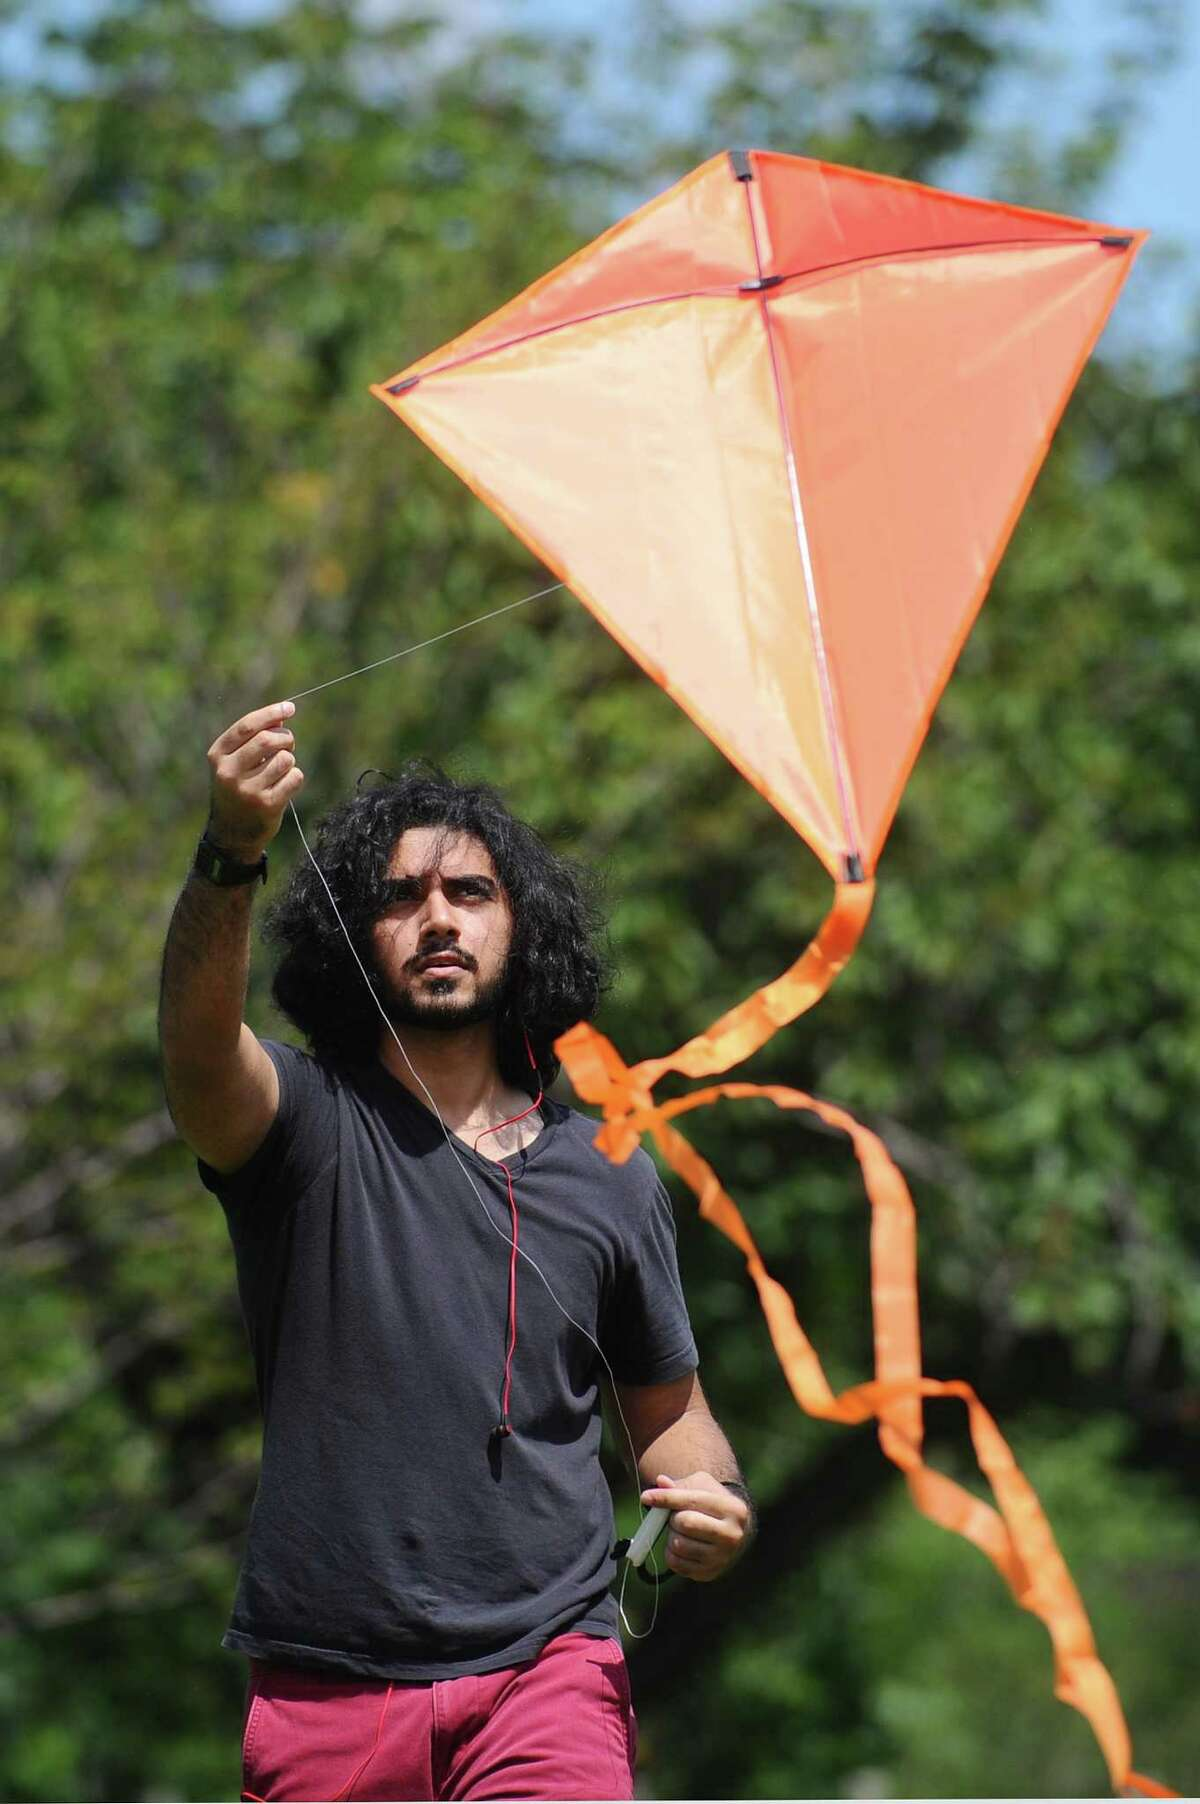 19-year-old Mohammad Faisal Vasanwala, of Stamford, flies a kite during the India Day Festival at Mill River Park in Stamford, Conn. on Sunday, August 13, 2017.